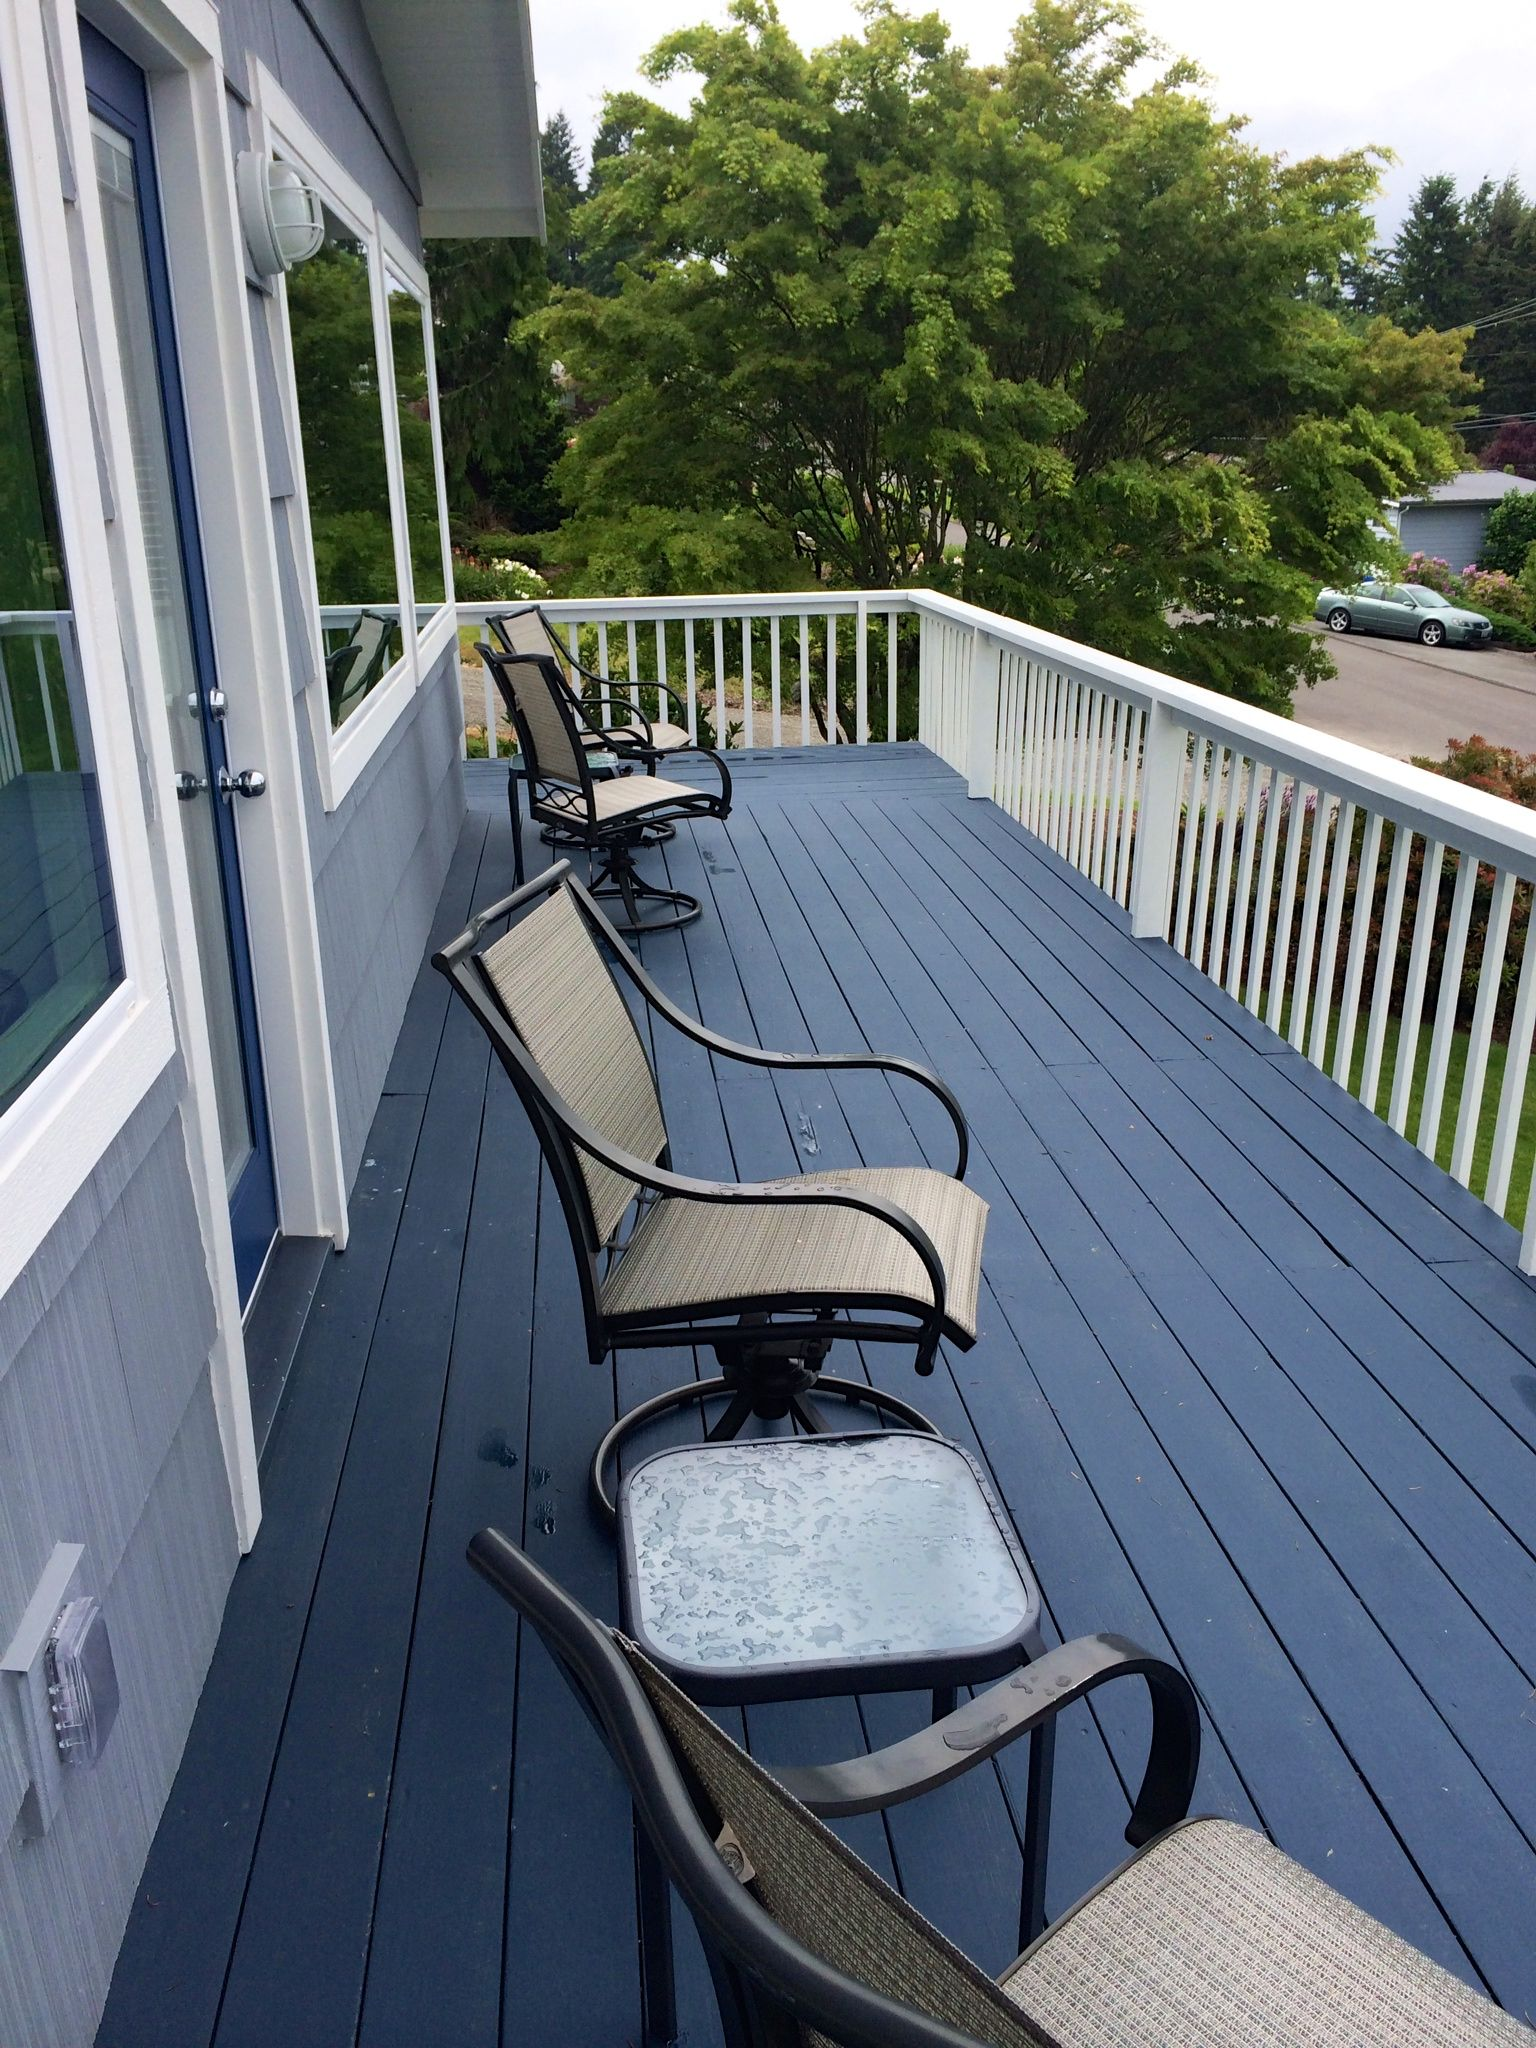 Behr Porch And Patio Paint Quart: After--we Did This Project About A Year And A Half Ago